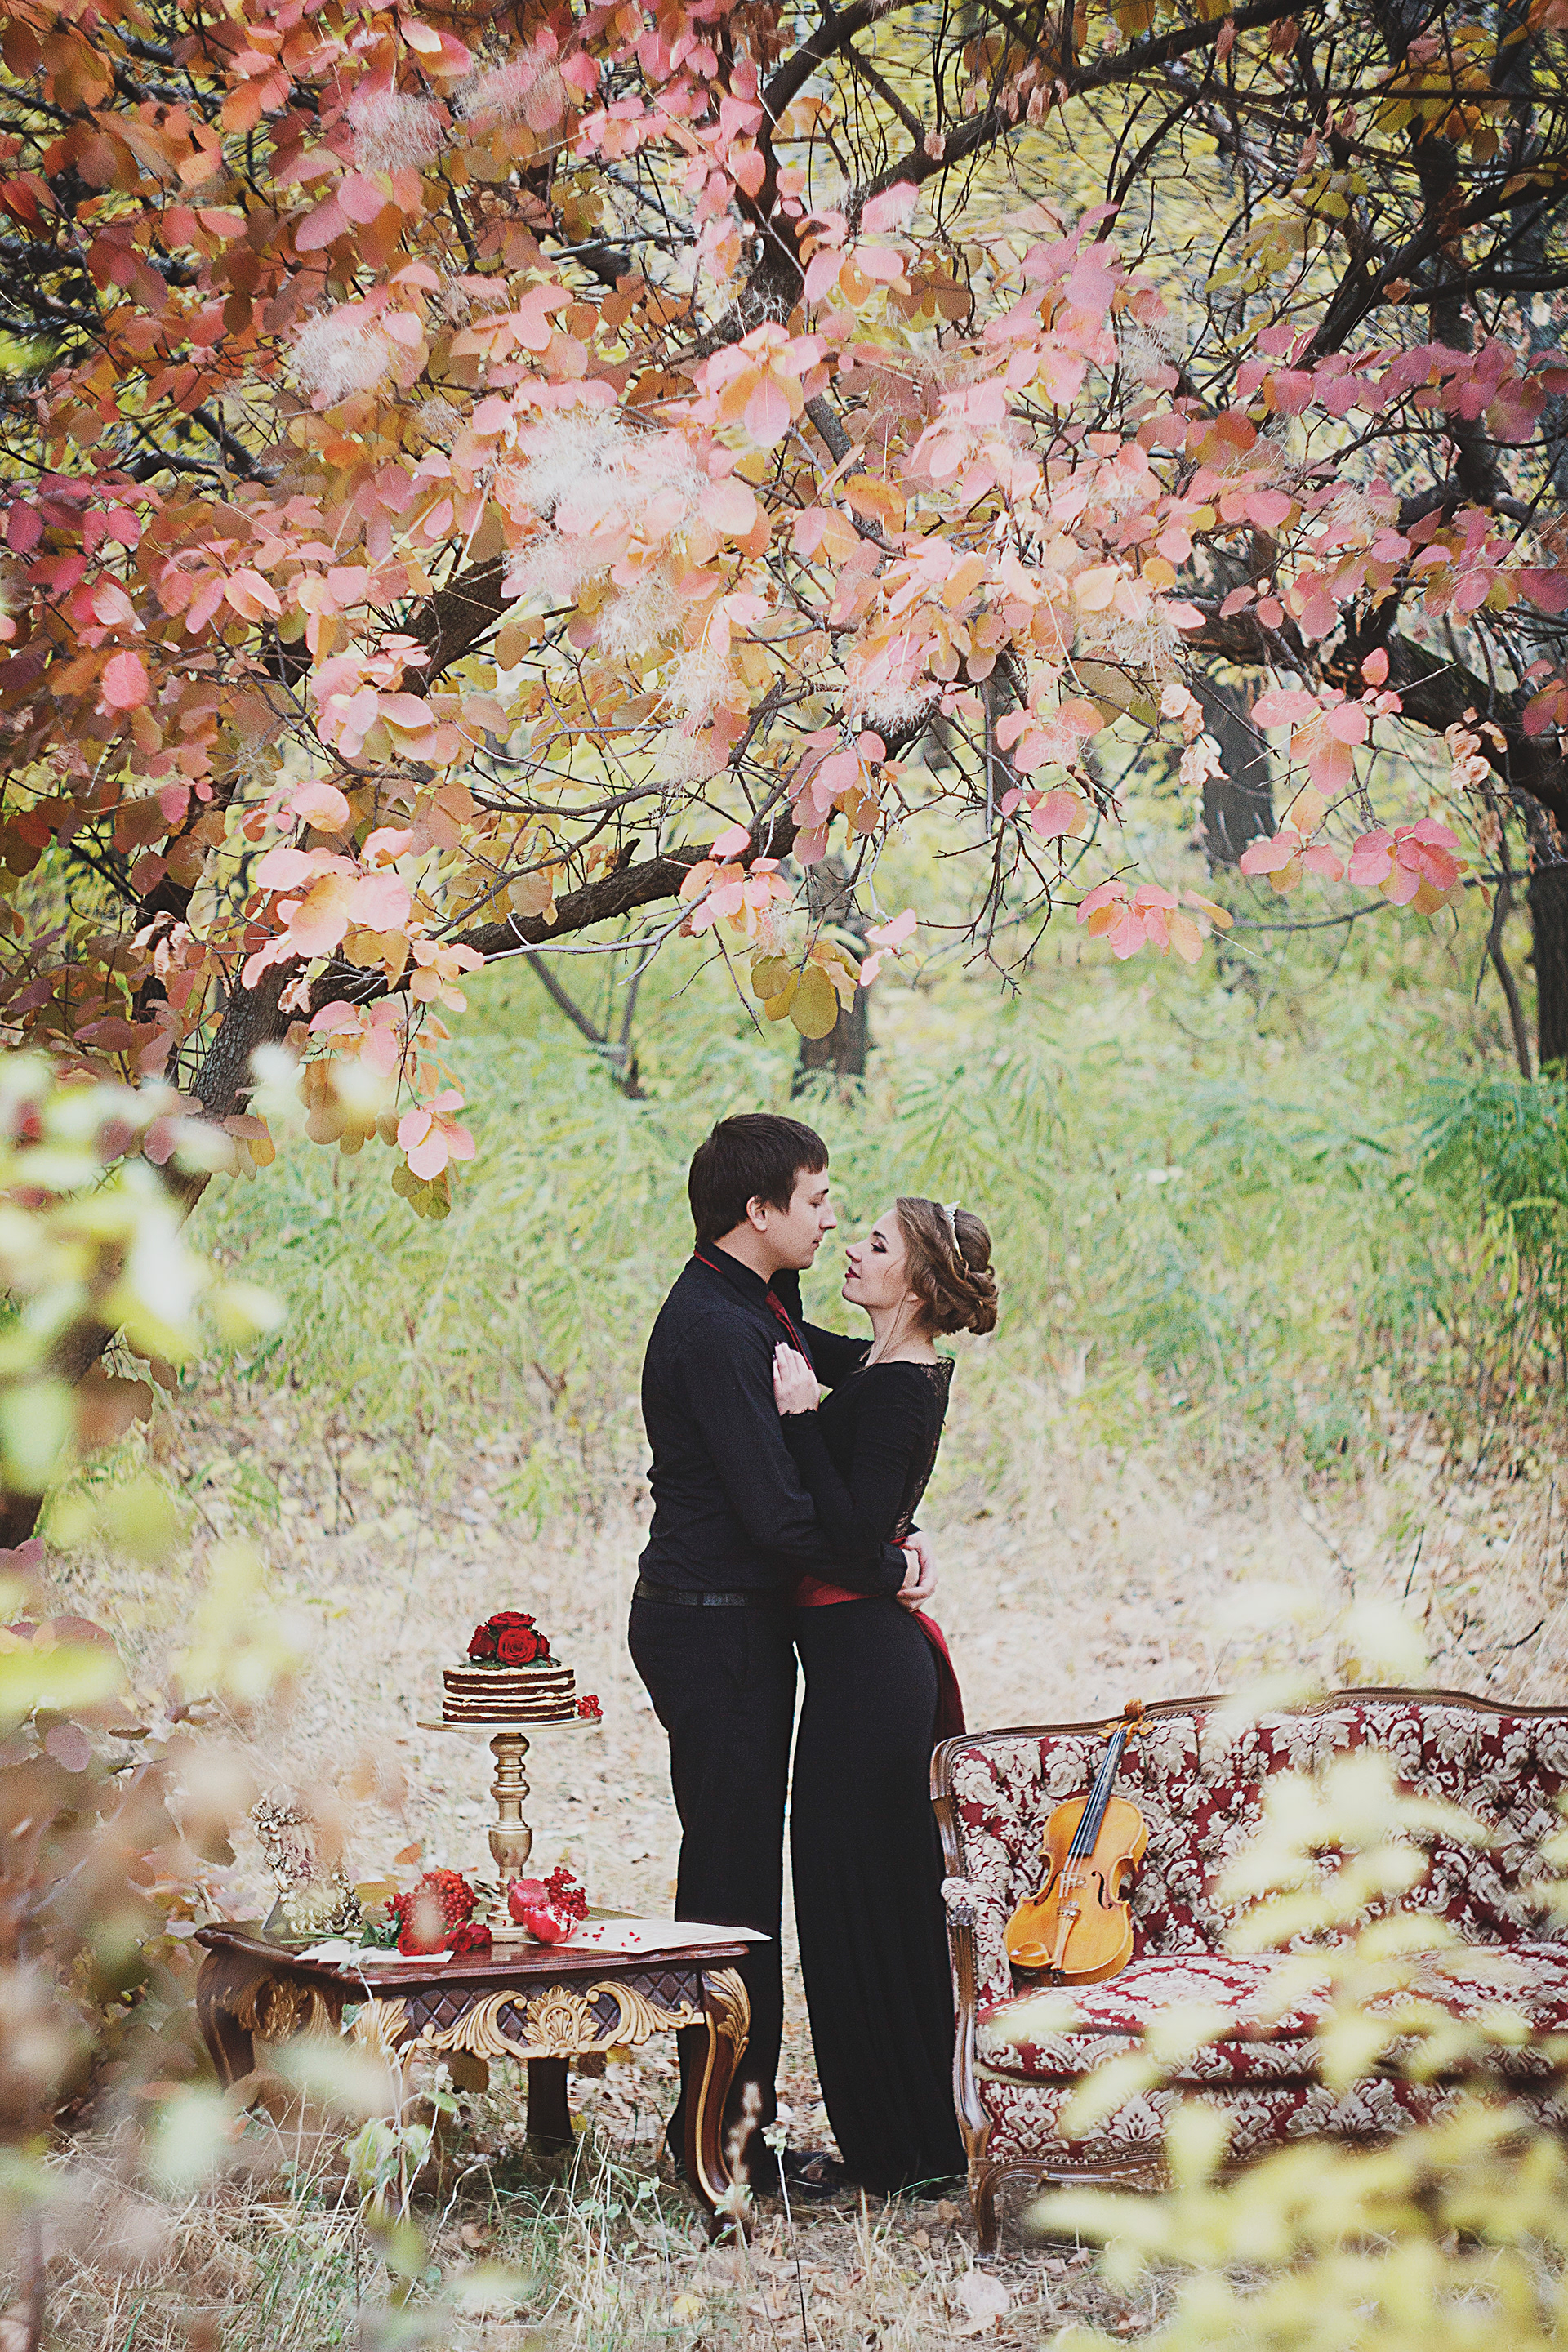 Autumn Love Story Wallpapers High Quality   Download Free